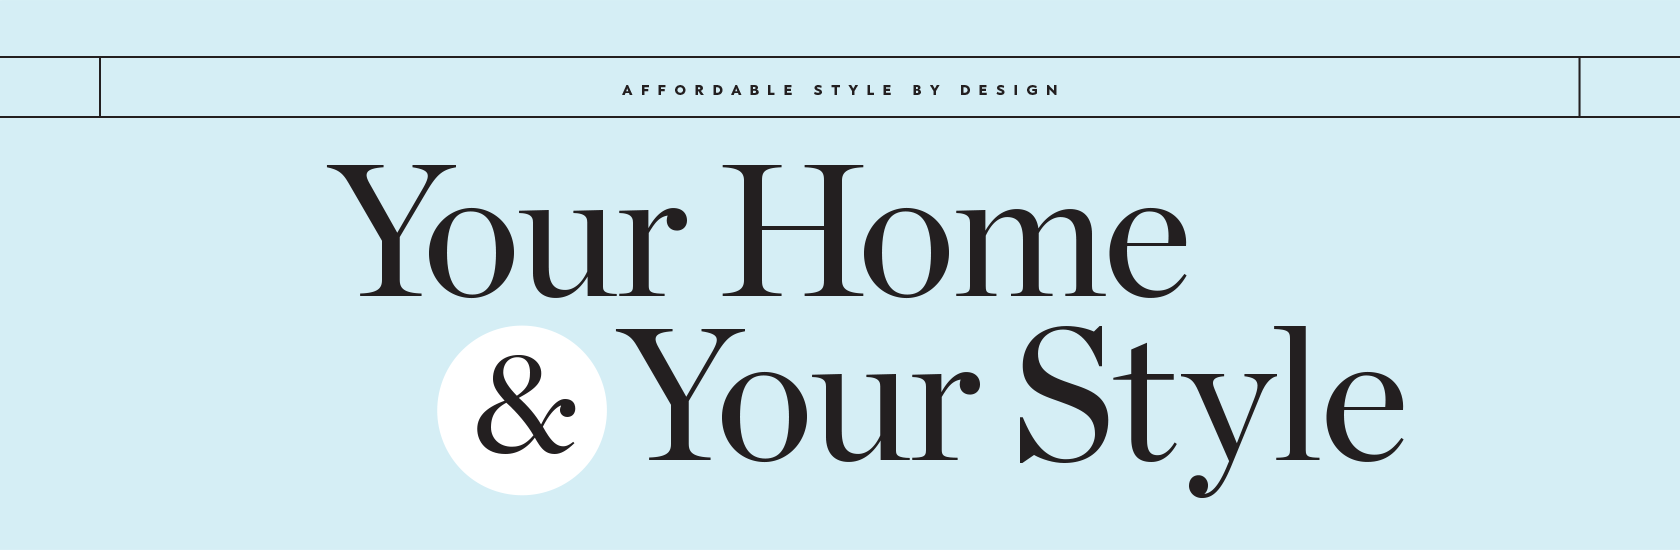 DesignSense Selections banner. Your Home & Your Style.